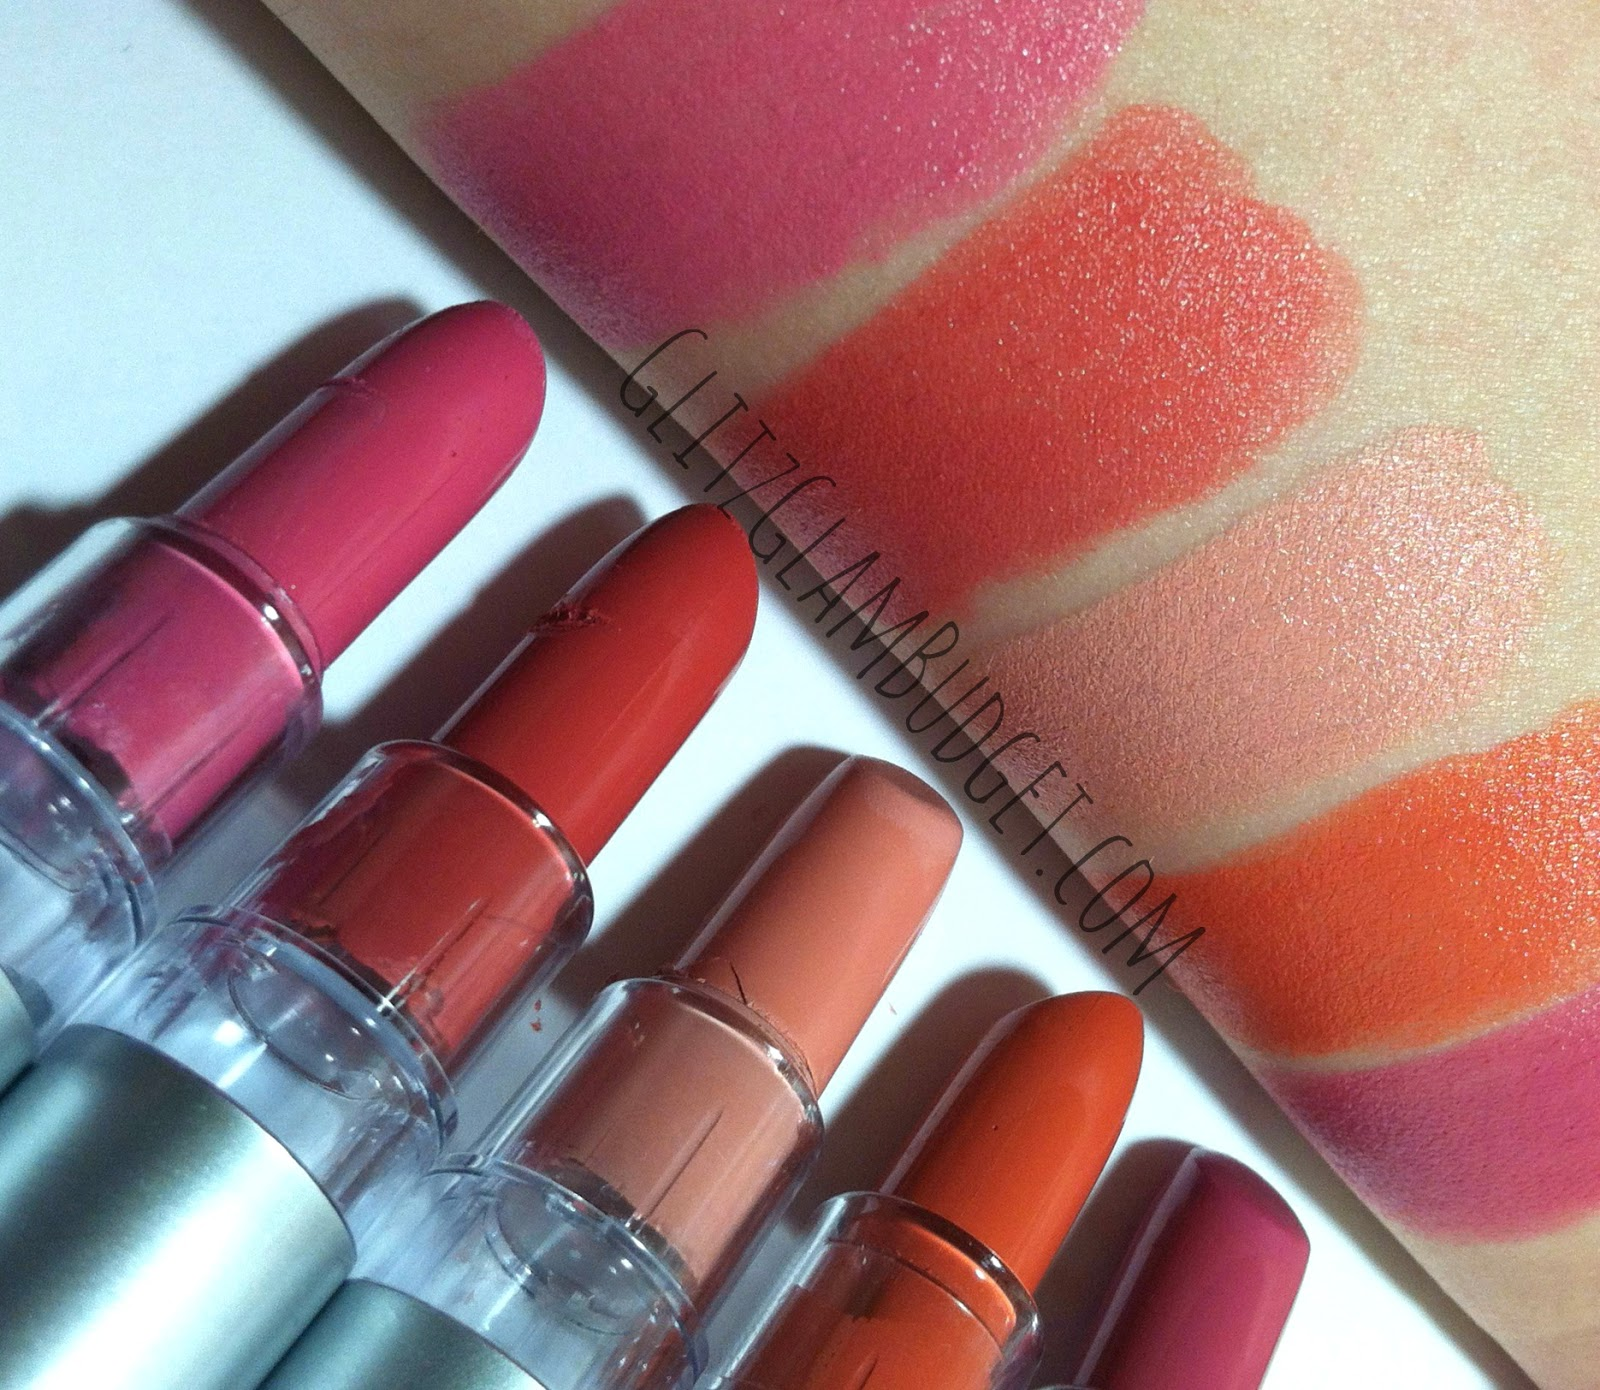 ELF Cosmetics Lipstick Swatches